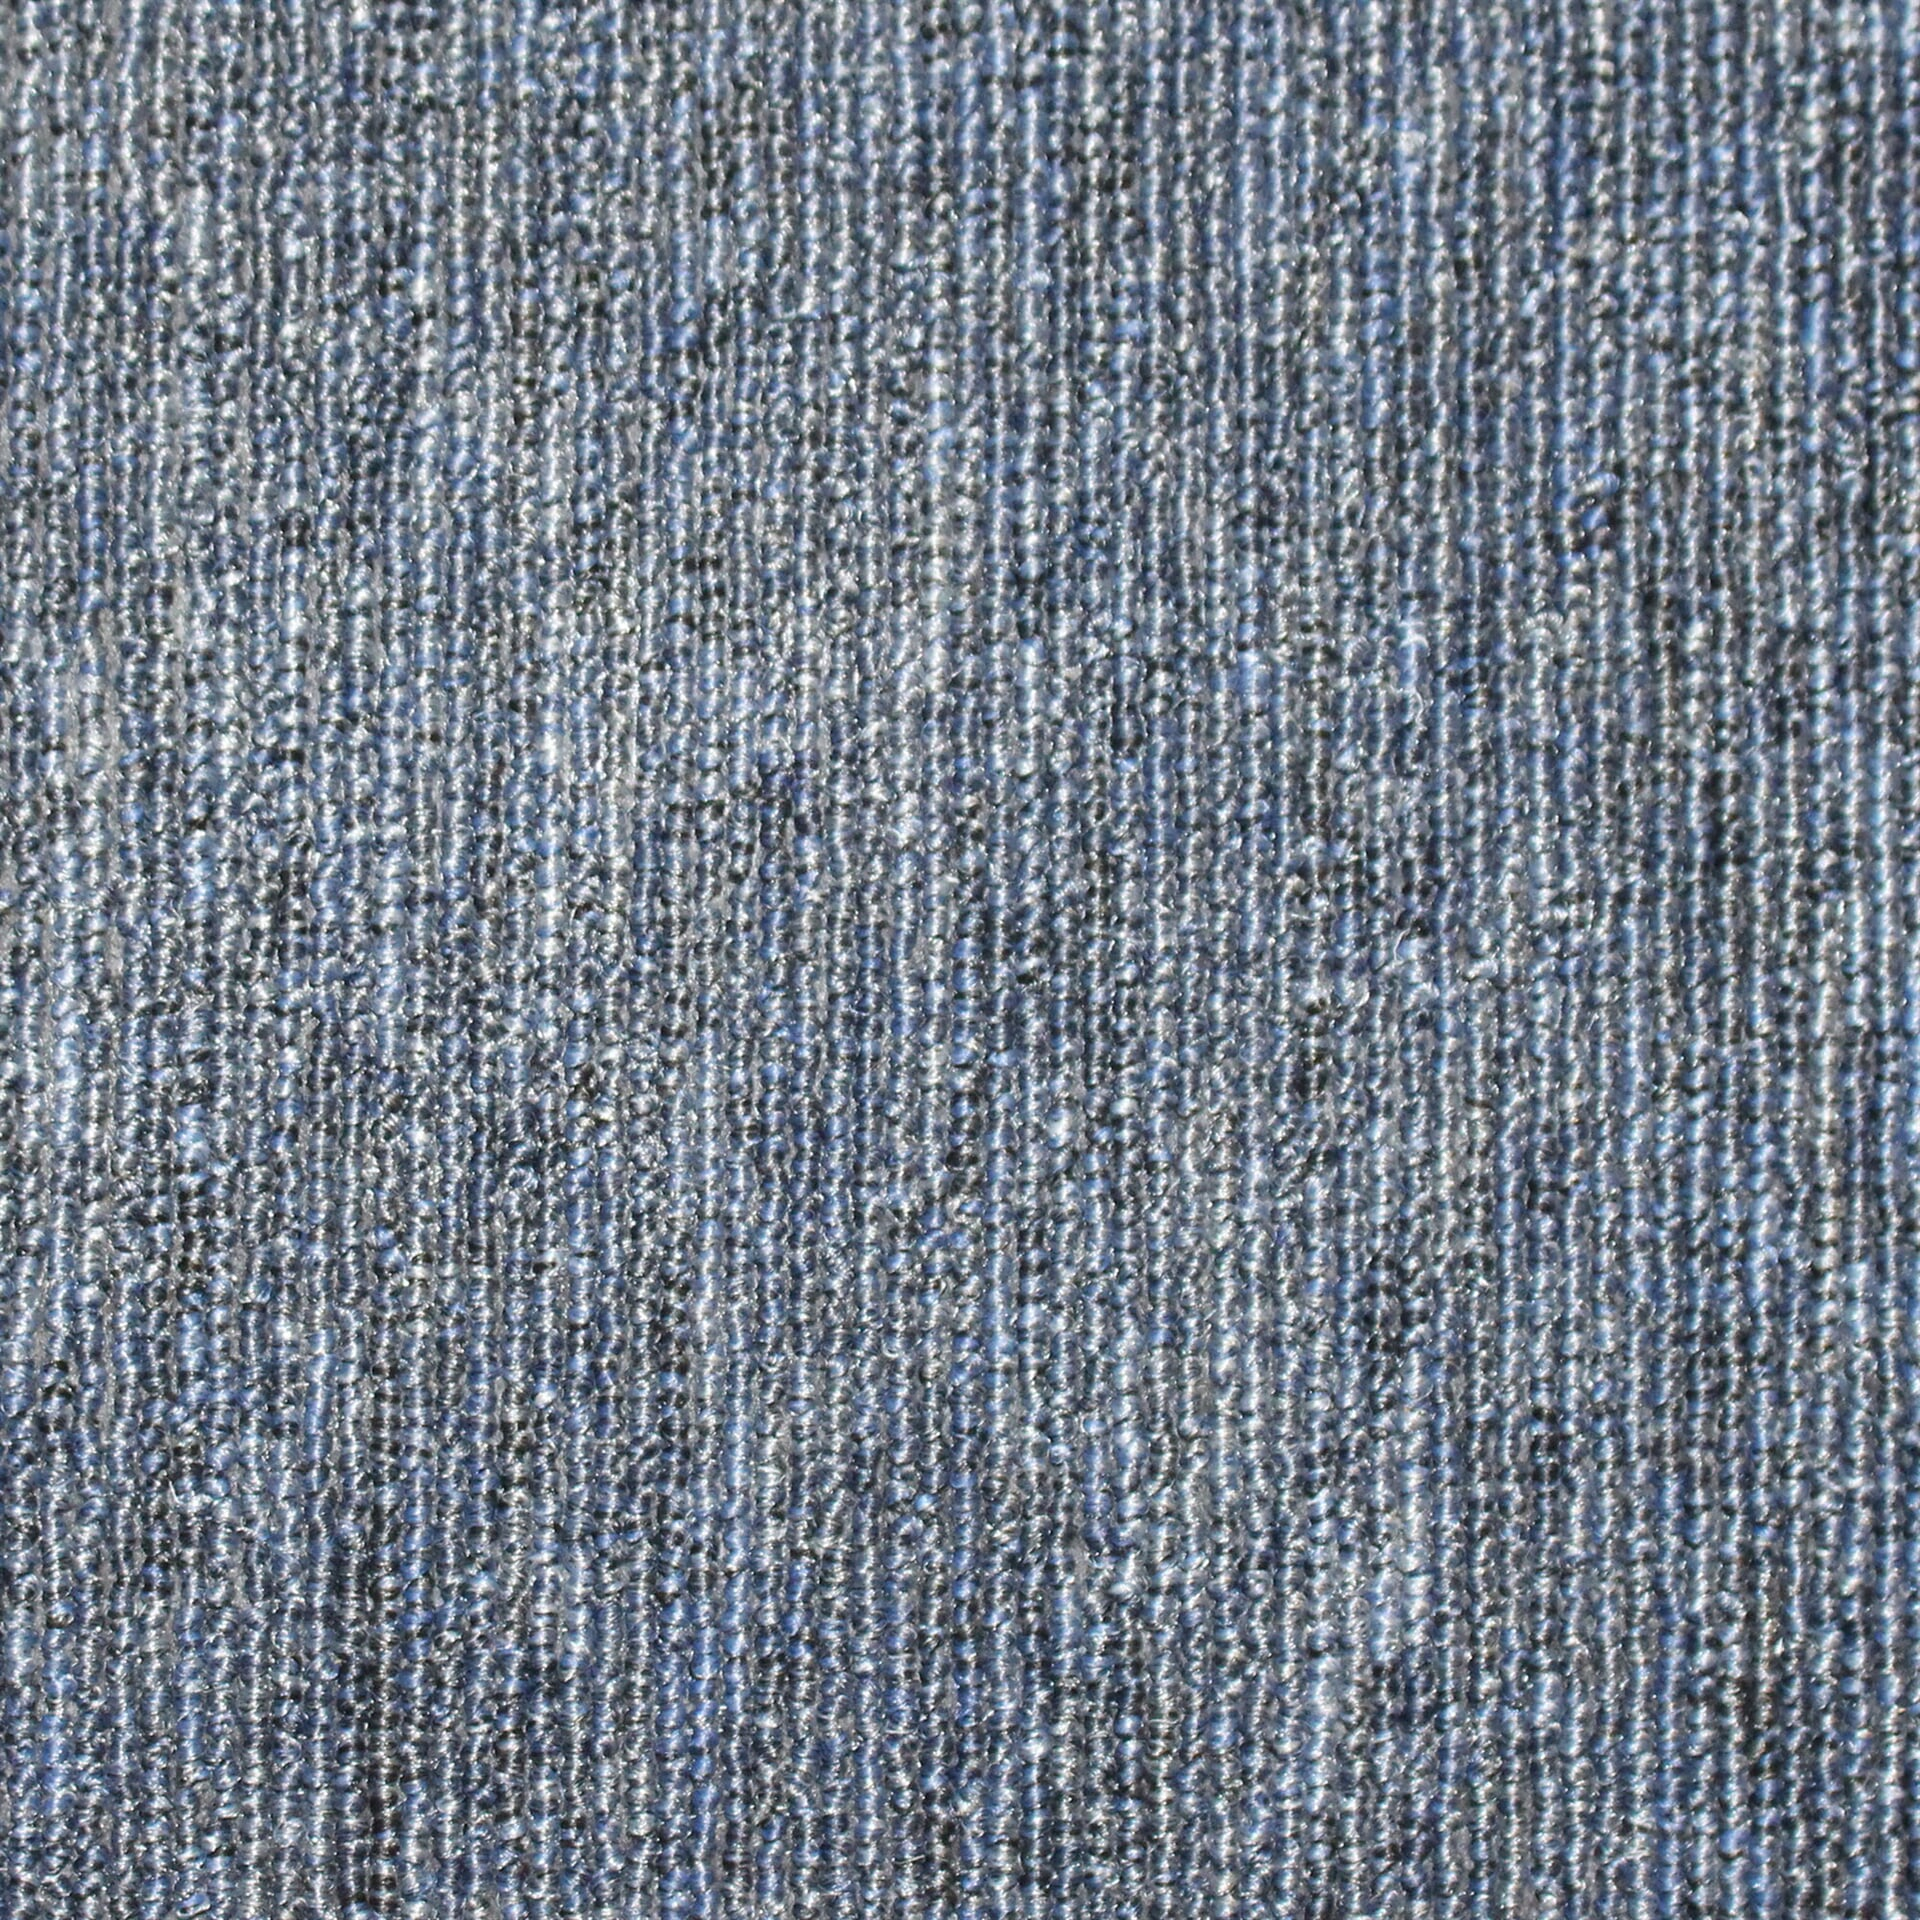 Genstock Align carpet in Cobalt from General Floor